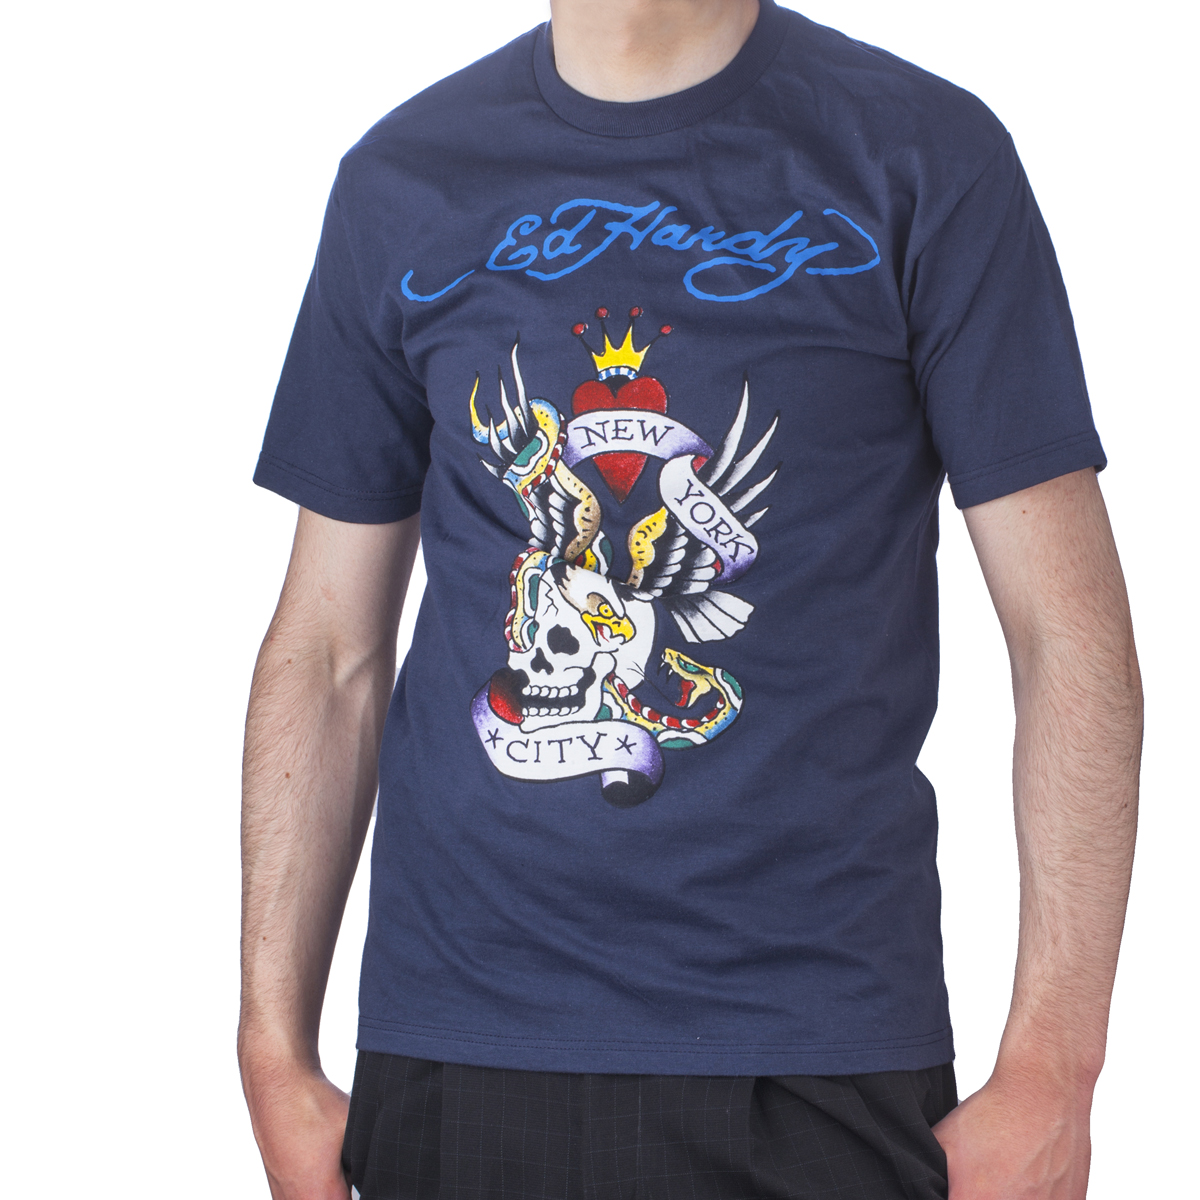 Ed Hardy Mens New York City Graphic Tee Shirt - Navy